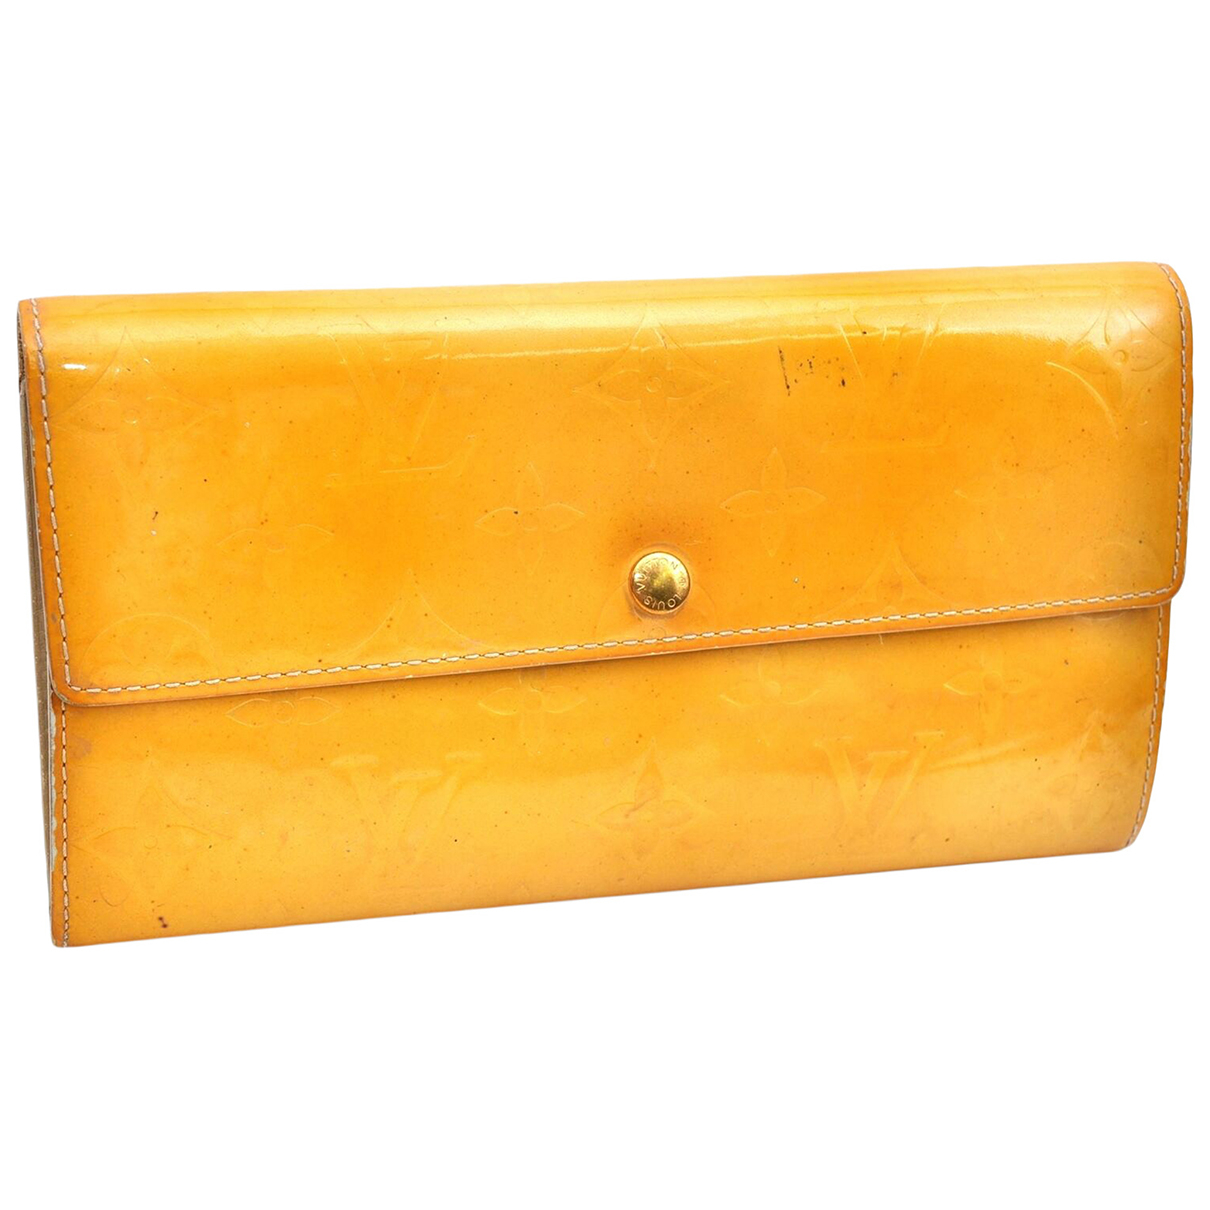 Louis Vuitton N Yellow Patent leather wallet for Women N